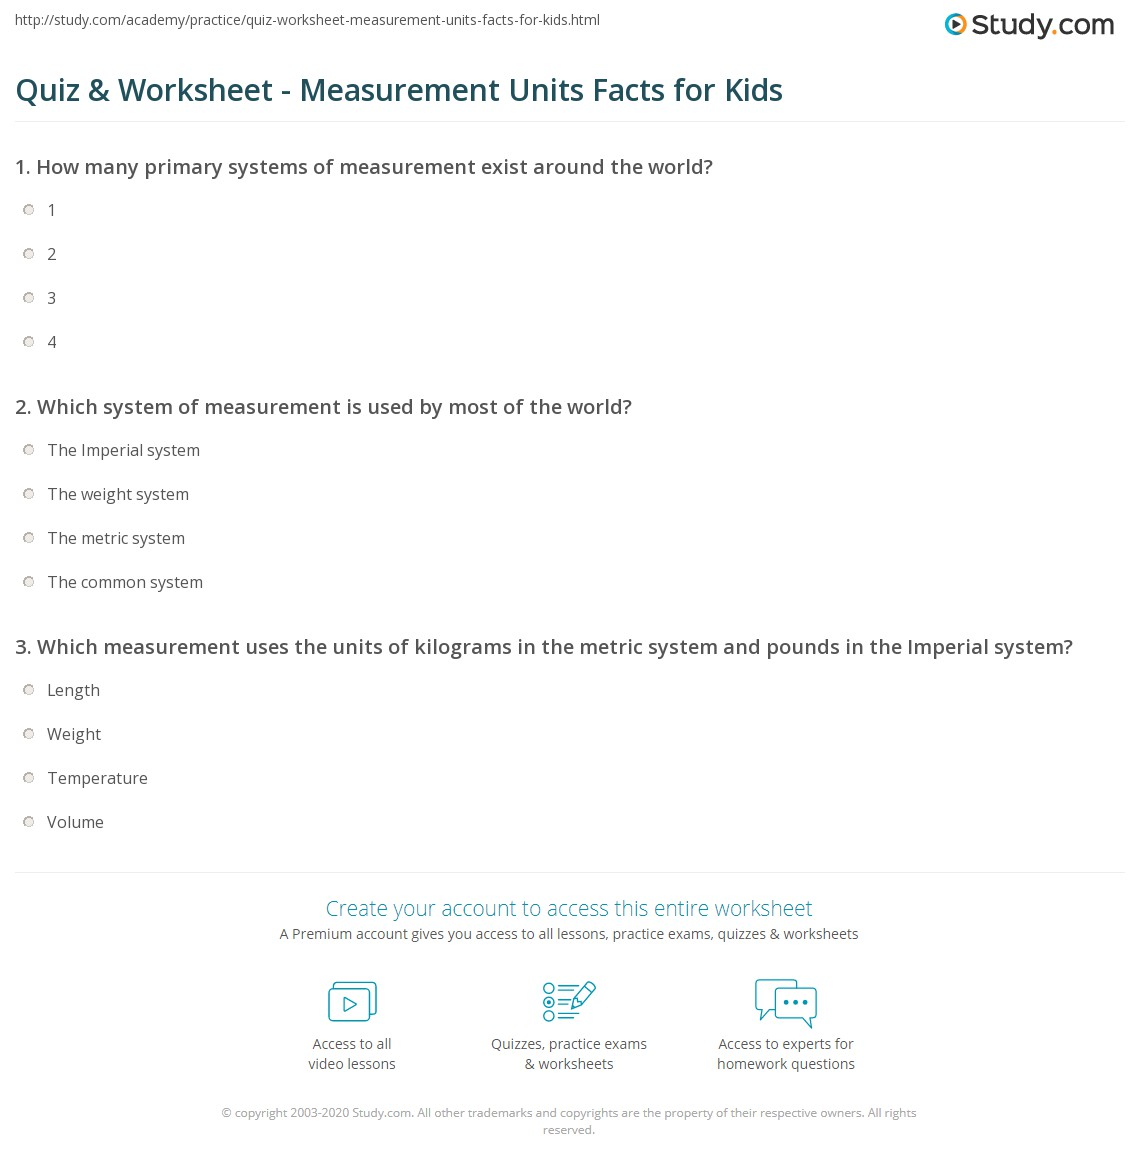 Quiz Worksheet Measurement Units Facts For Kids Study